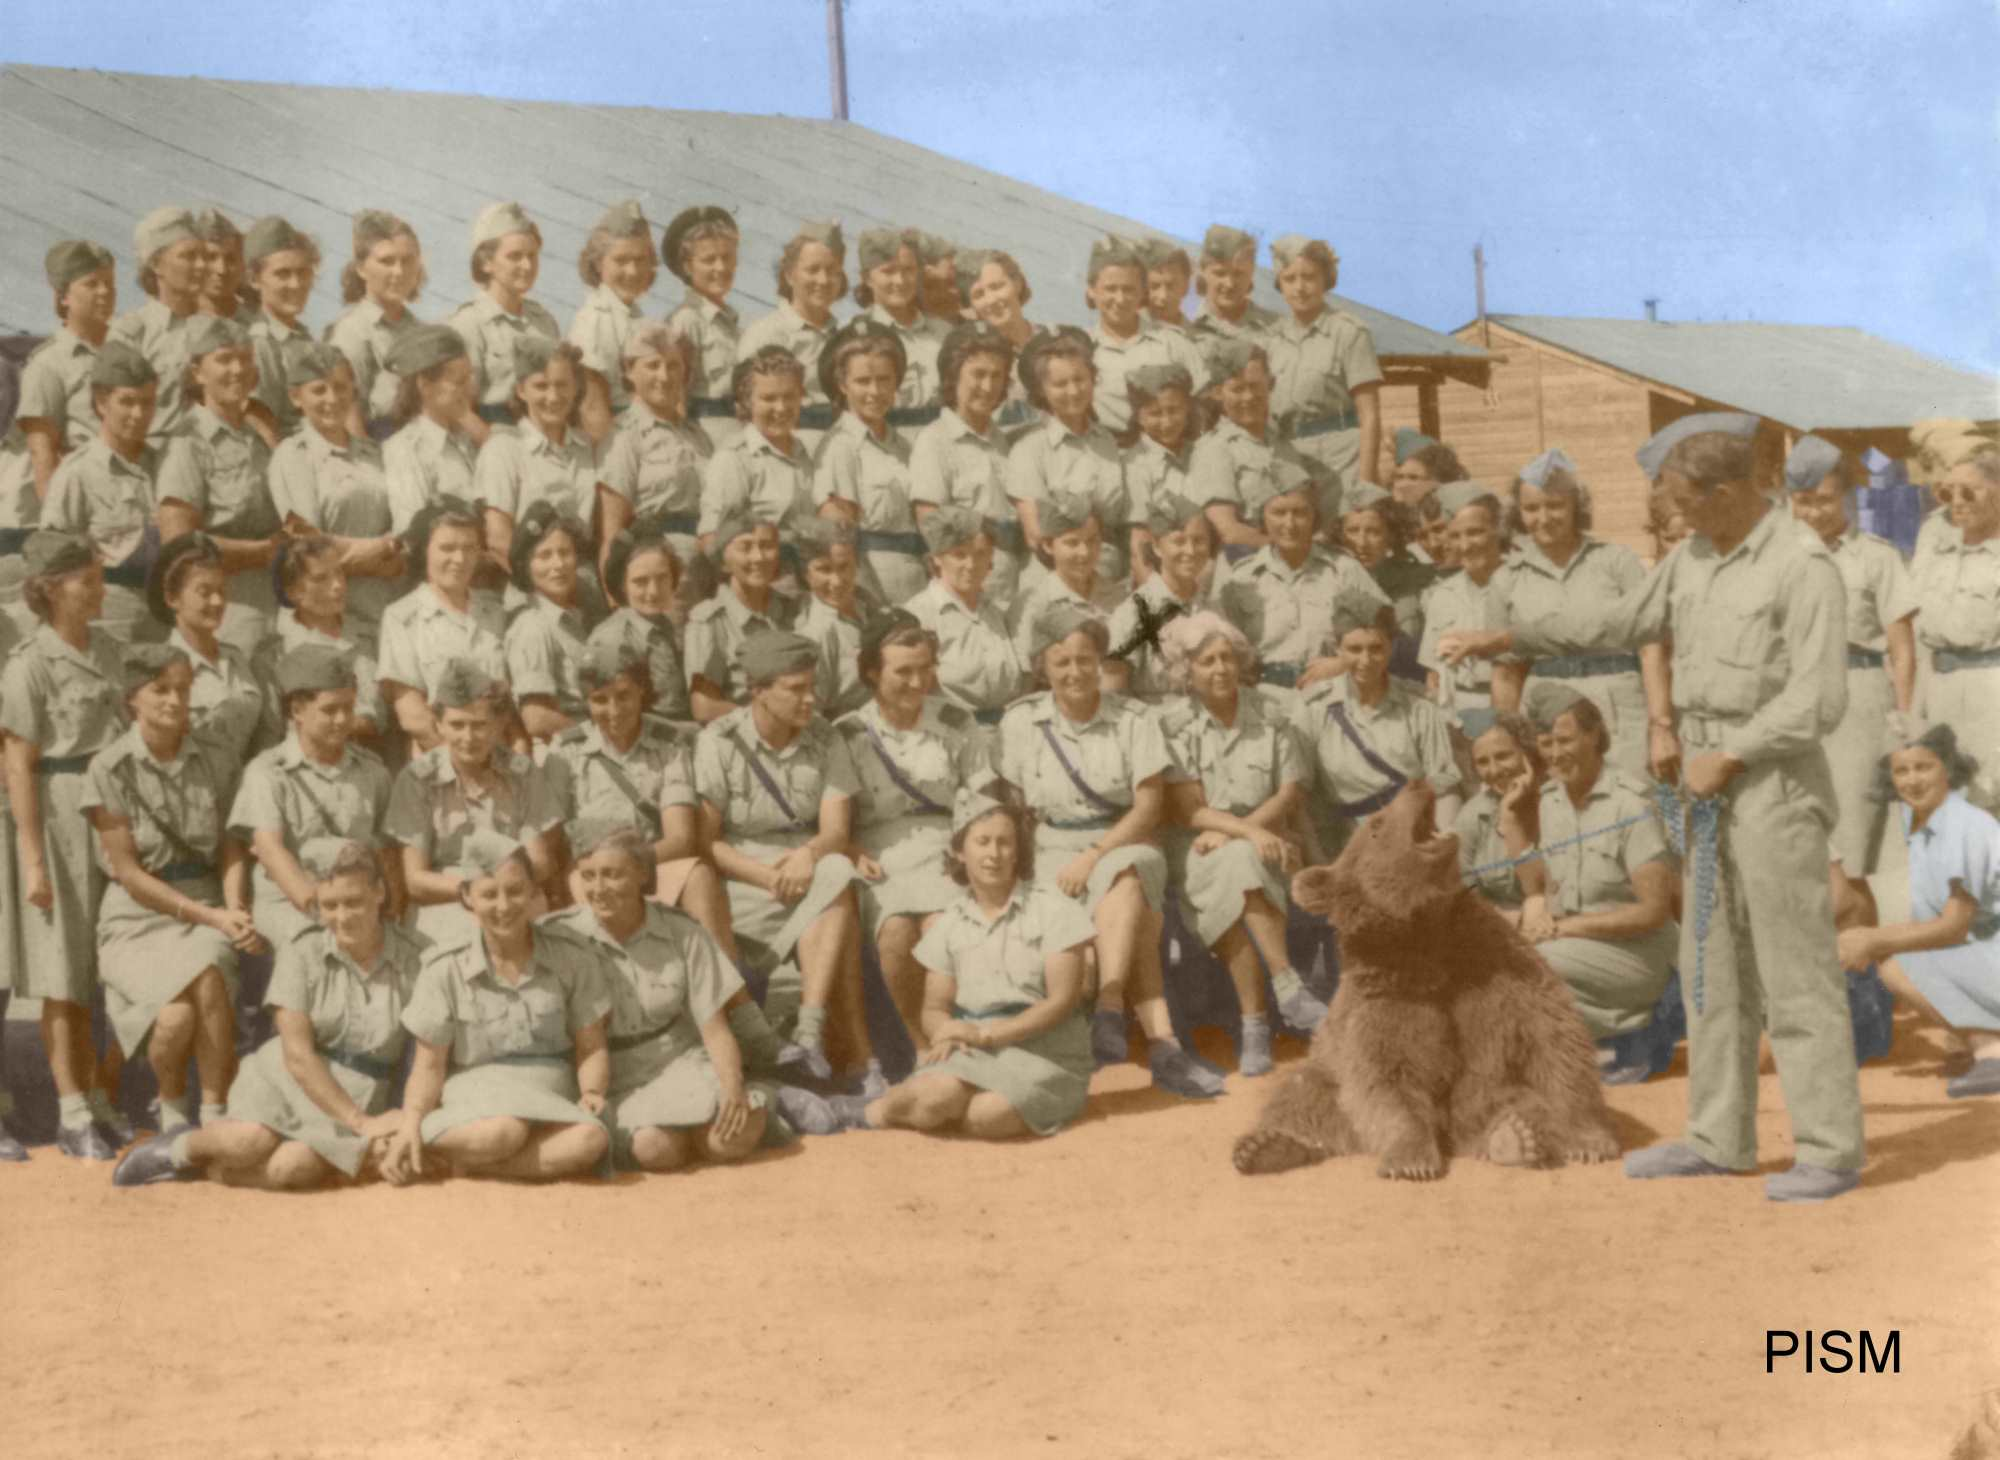 Wojtek Bear with other troops